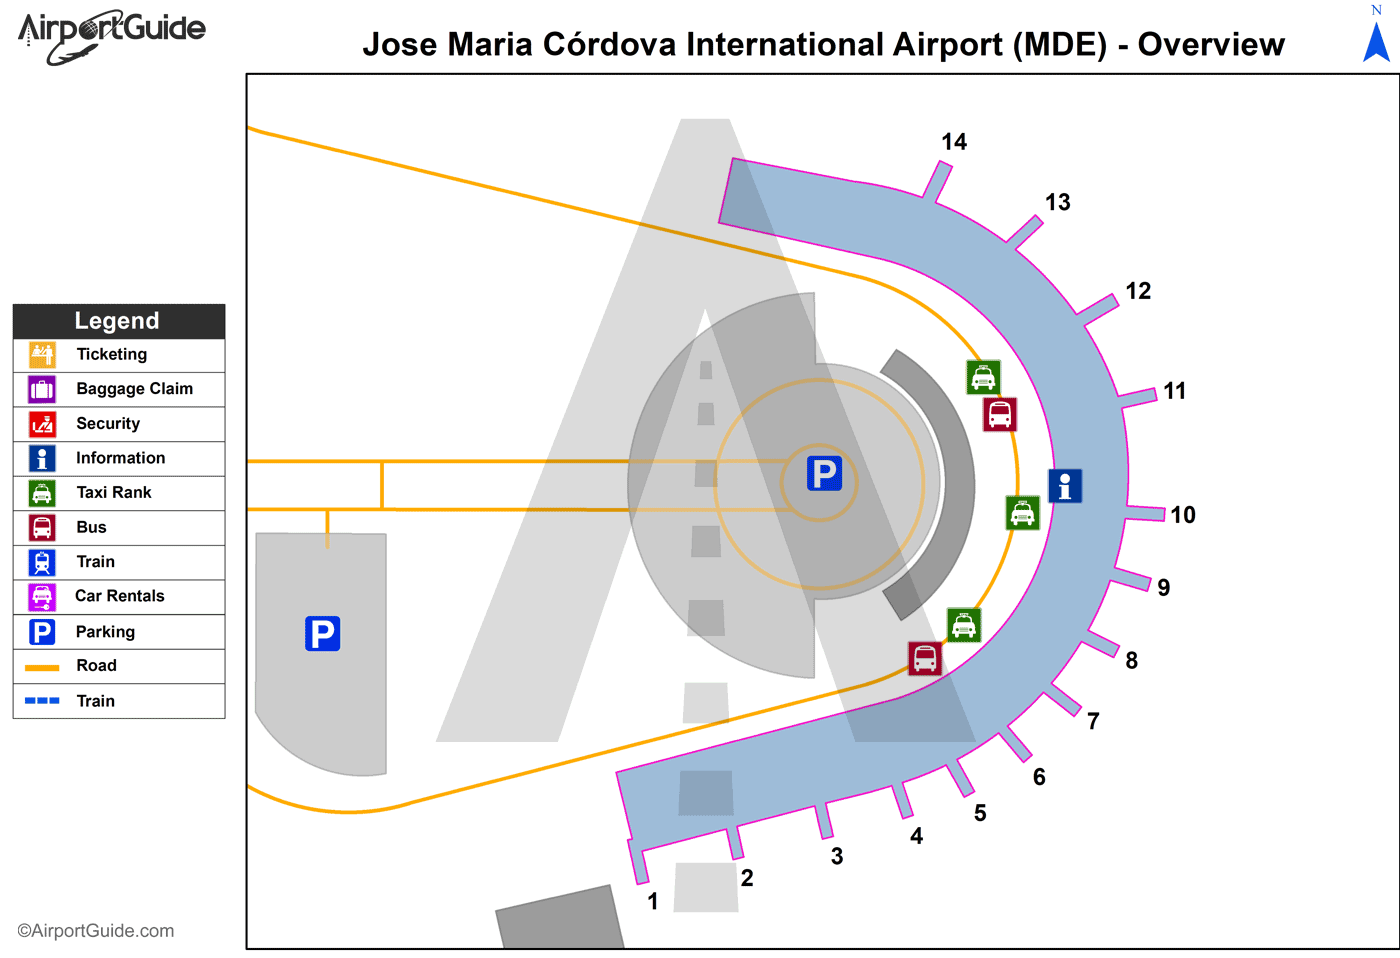 Rionegro - Jose Maria Córdova International Airport (MDE) Airport Terminal Map - Overview